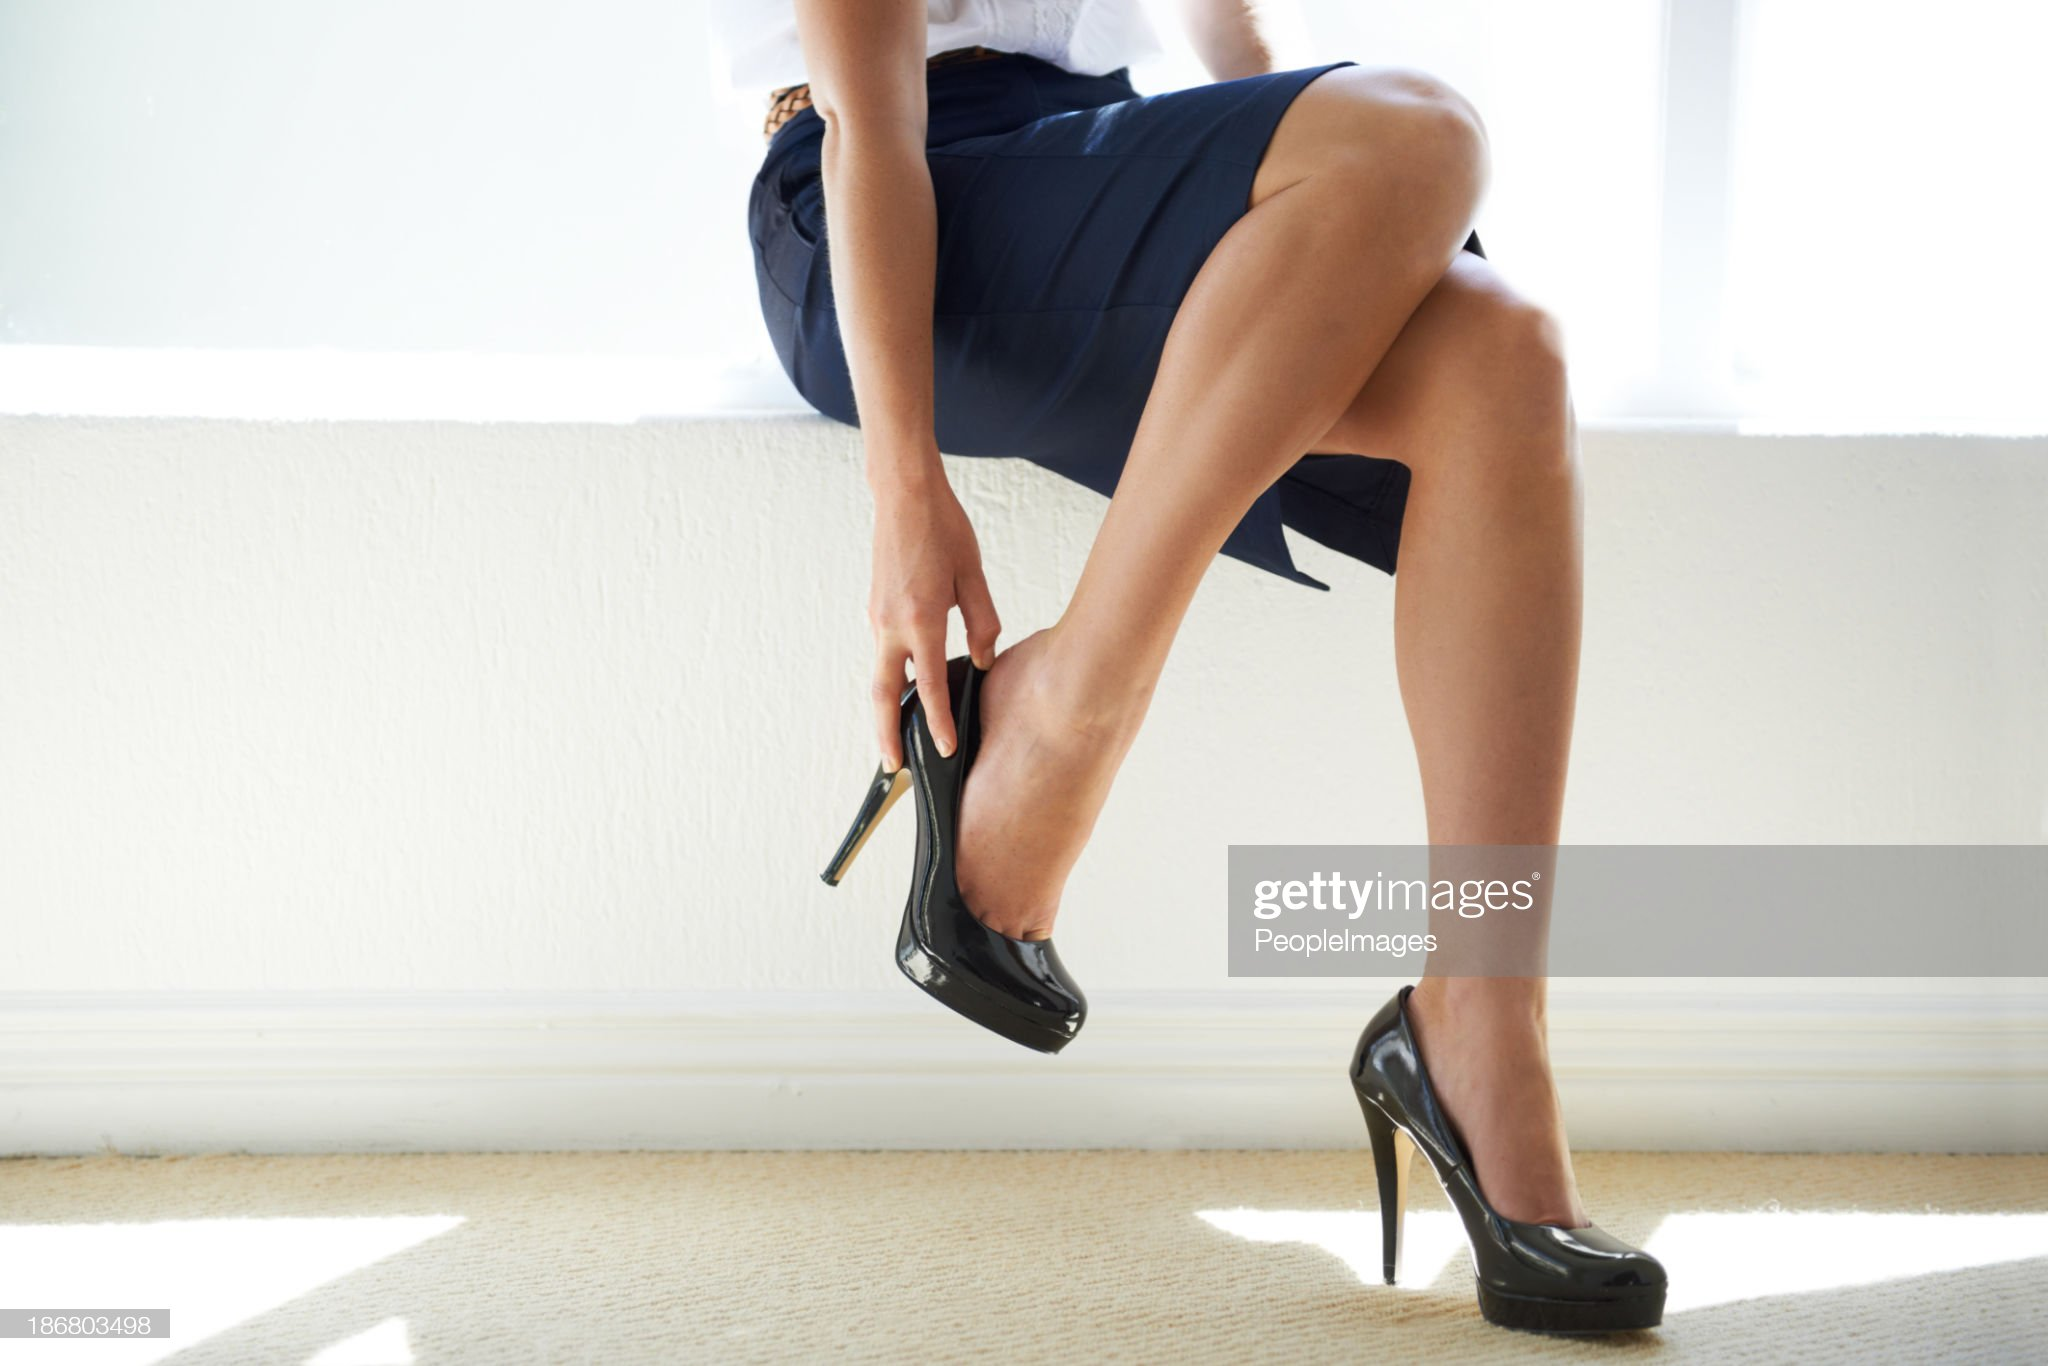 Quel homme ! Power-heels-picture-id186803498?s=2048x2048